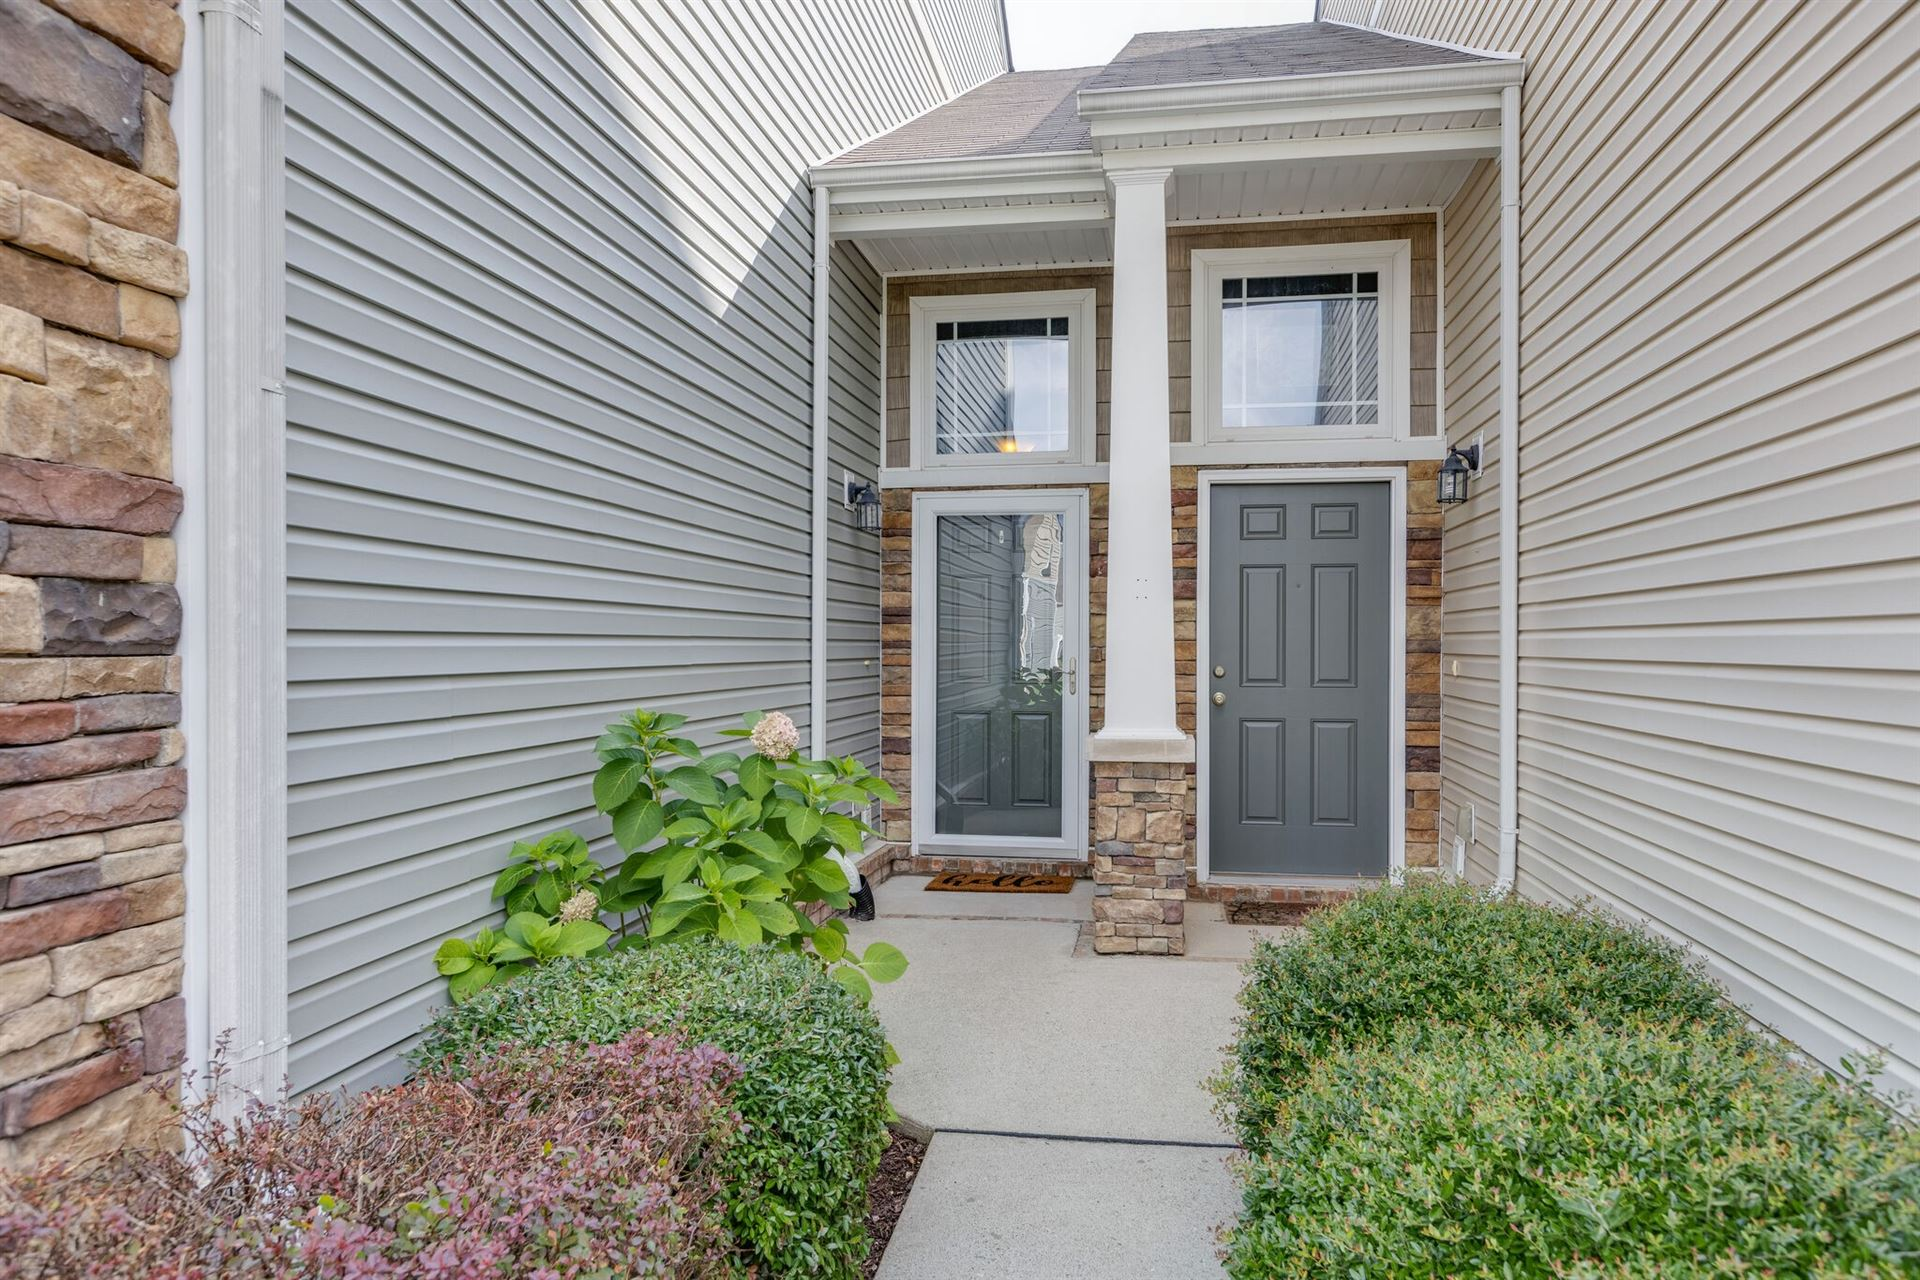 Photo of 1054 Somerset Springs Dr, Spring Hill, TN 37174 (MLS # 2276662)